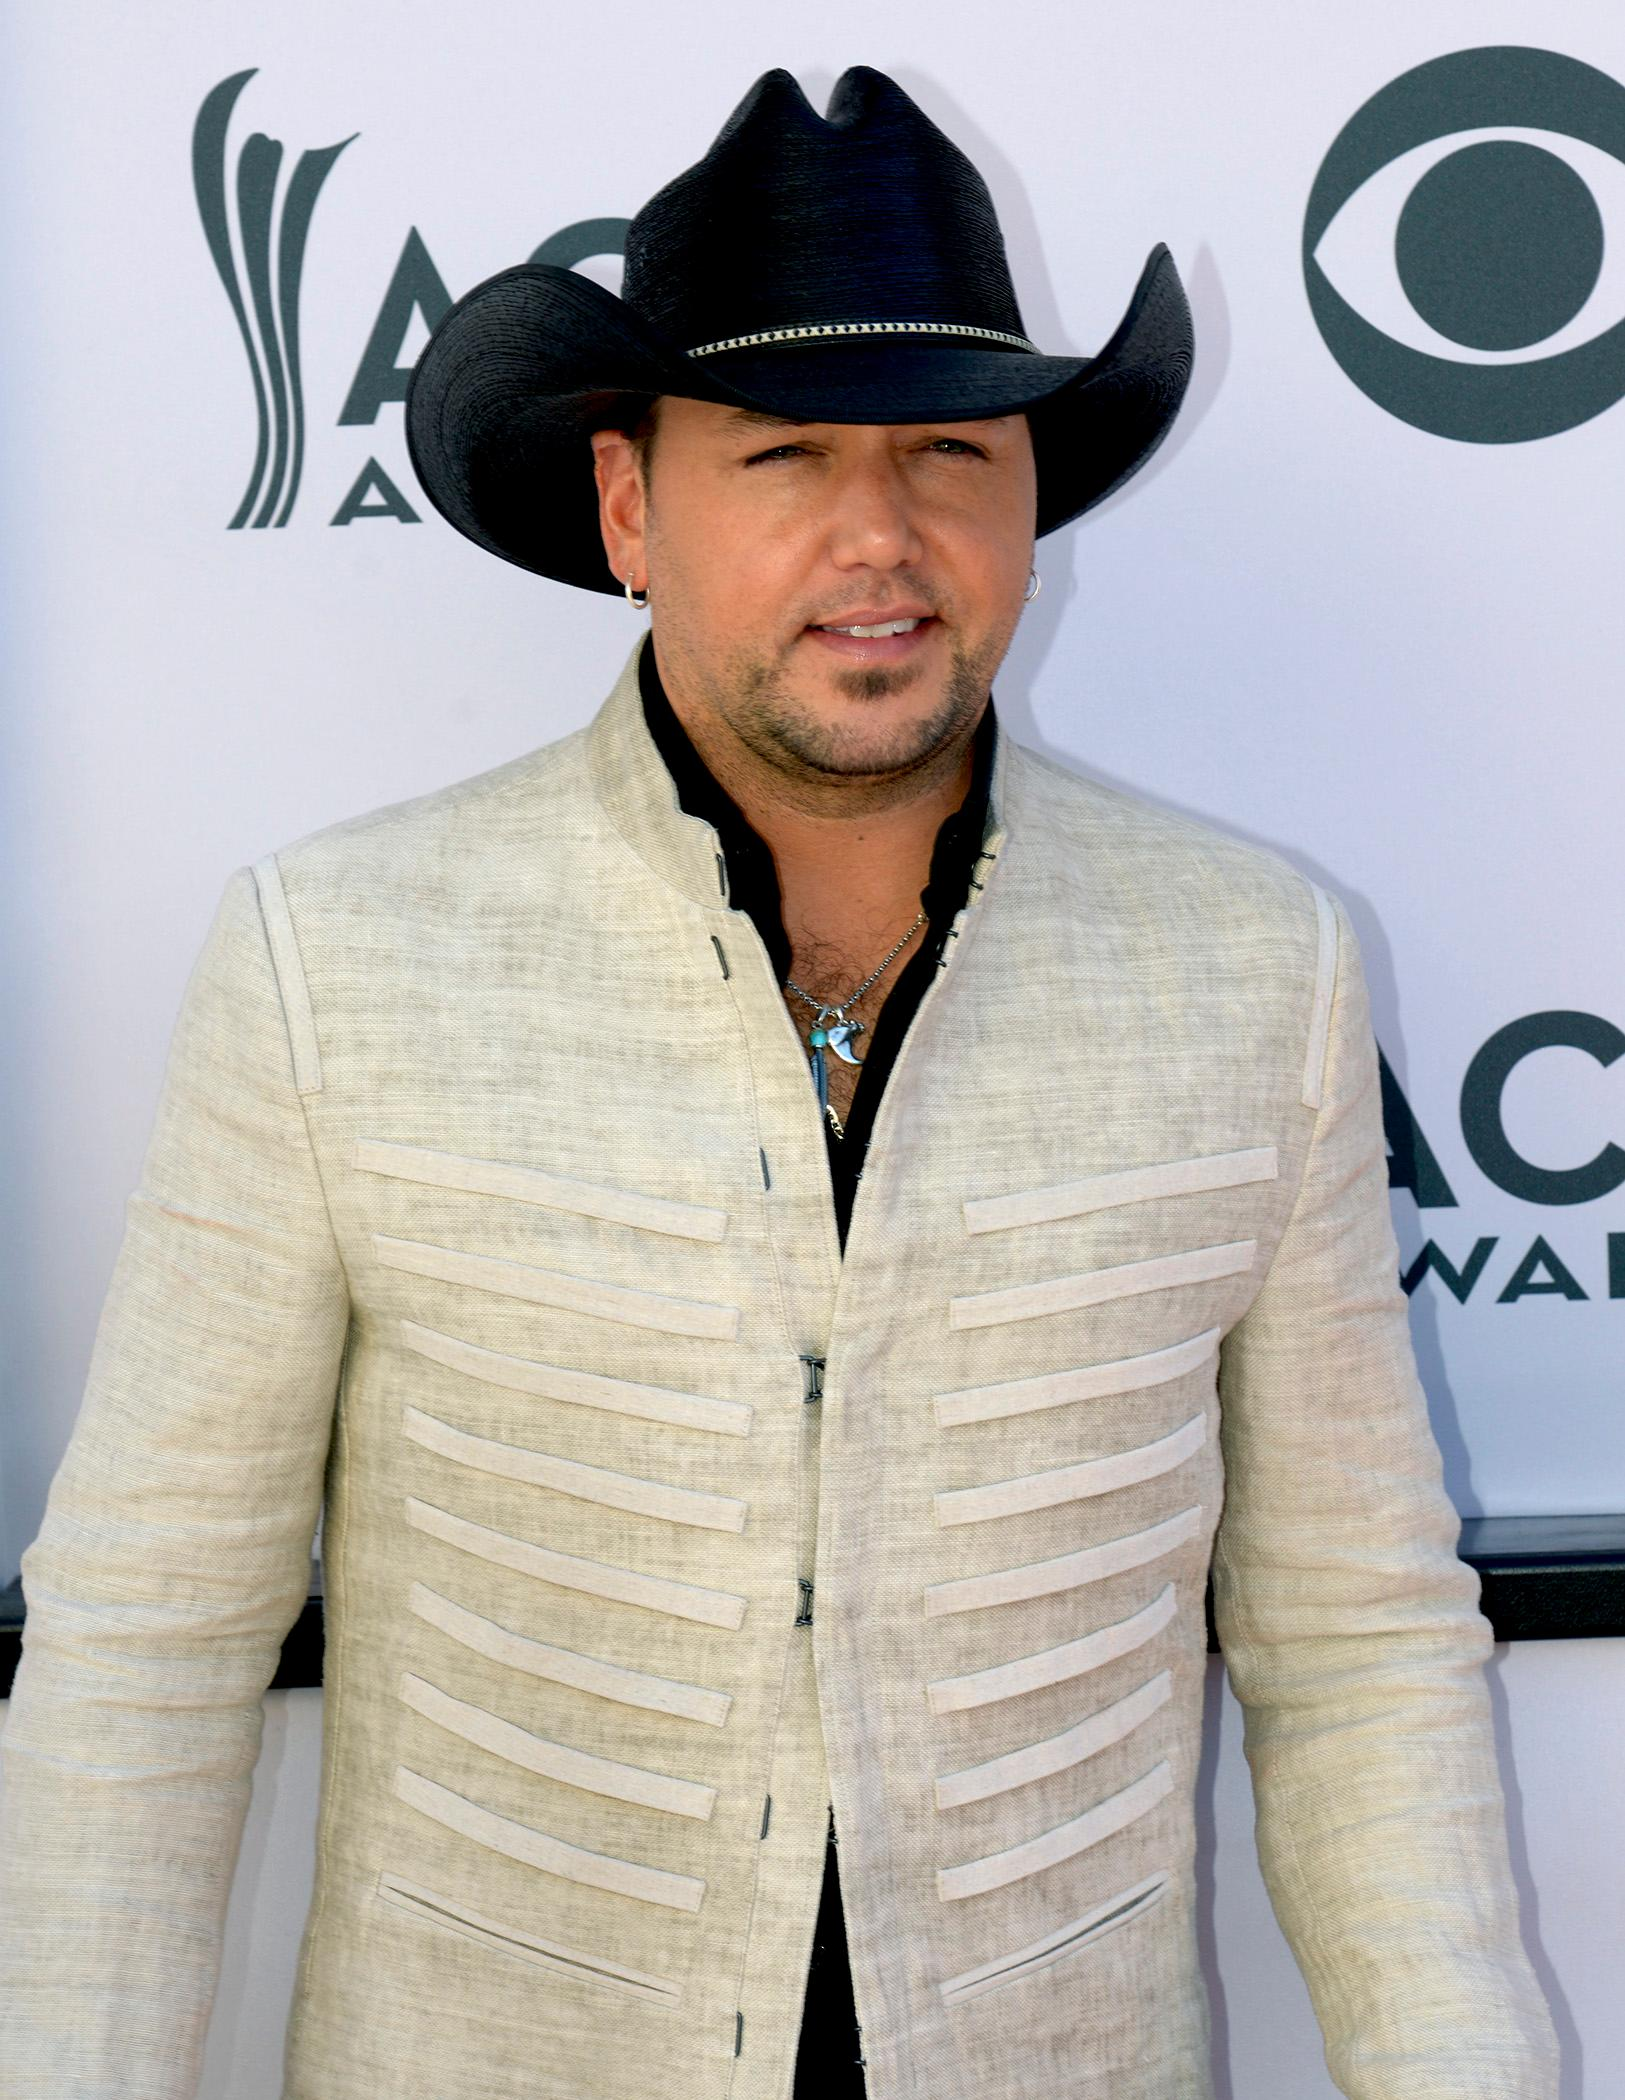 Singer Jason Aldean, nominee for Entertainer of the Year and Male Vocalist of the Year walks the Academy of Country Music Awards red carpet at T-Mobile Arena. Sunday, April 2, 2017. (Glenn Pinkerton/ Las Vegas News Bureau)